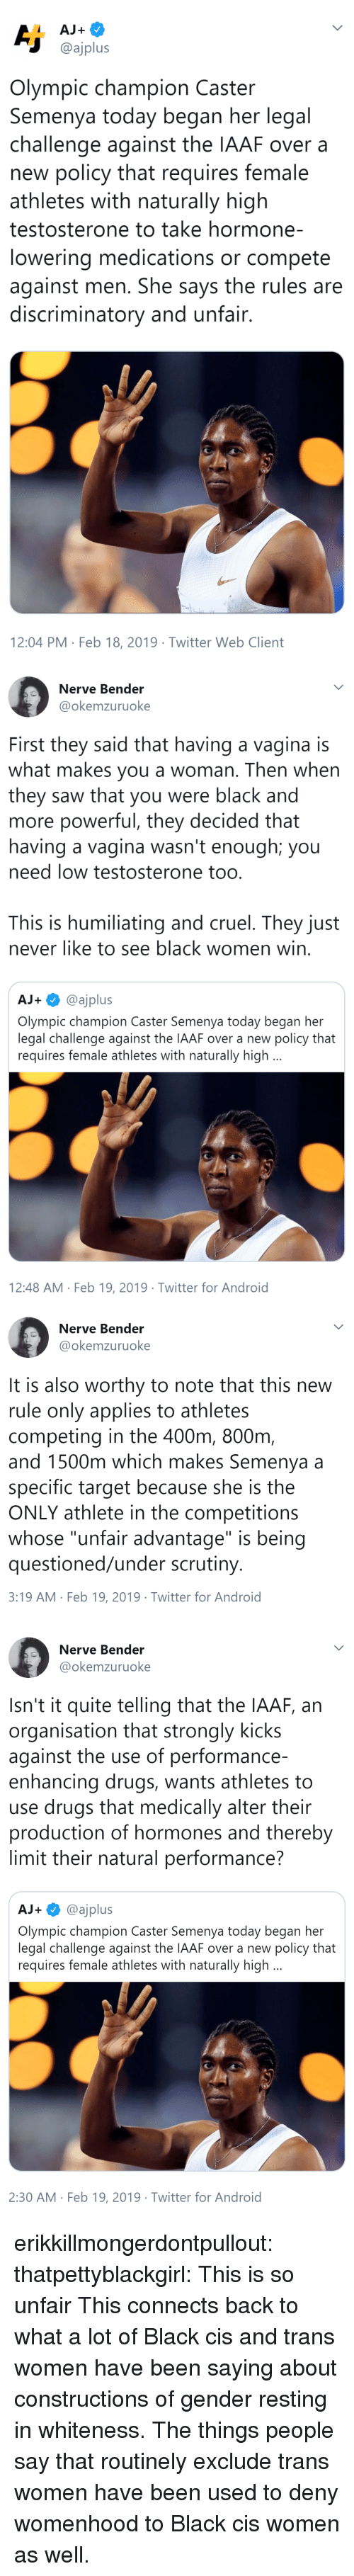 "Android, Drugs, and Saw: @ajplus  Olympic champion Caster  Semenya today began her legal  challenge against the IAAF over a  new policy that requires female  athletes with naturally high  testosterone to take hormone-  lowering medications or compete  against men. She says the rules are  discriminatory and unfair  12:04 PM Feb 18, 2019 Twitter Web Client   Nerve Bender  @okemzuruoke  First they said that having a vagina is  what makes you a woman. Then when  they saw that you were black and  more powerful, they decided that  having a vagina wasn't enough; you  need low testosterone too  This is humiliating and cruel. They just  never like to see black women win  AJ+@ajplus  Olympic champion Caster Semenya today began her  legal challenge against the IAAF over a new policy that  requires female athletes with naturally high  12:48 AM Feb 19, 2019 Twitter for Android   Nerve Bender  @okemzuruoke  It is also worthy to note that this new  rule only applies to athletes  competing in the 400m, 800nm  and 1500m which makes Semenya a  specific target because she is the  ONLY athlete in the competitions  whose ""unfair advantage"" is being  questioned/under scrutiny  3:19 AM Feb 19, 2019 Twitter for Android   Nerve Bender  @okemzuruoke  Isn't it quite telling that the IAAF, an  organisation that strongly kicks  against the use of performance-  enhancing drugs, wants athletes to  use drugs that medically alter their  production of hormones and thereby  limit their natural performance?  AJ+@ajplus  Olympic champion Caster Semenya today began her  legal challenge against the IAAF over a new policy that  requires female athletes with naturally high  2:30 AM Feb 19, 2019 Twitter for Android erikkillmongerdontpullout: thatpettyblackgirl:  This is so unfair    This connects back to what a lot of Black cis and trans women have been saying about constructions of gender resting in whiteness. The things people say that routinely exclude trans women have been used to deny womenhood to Black cis women as well."